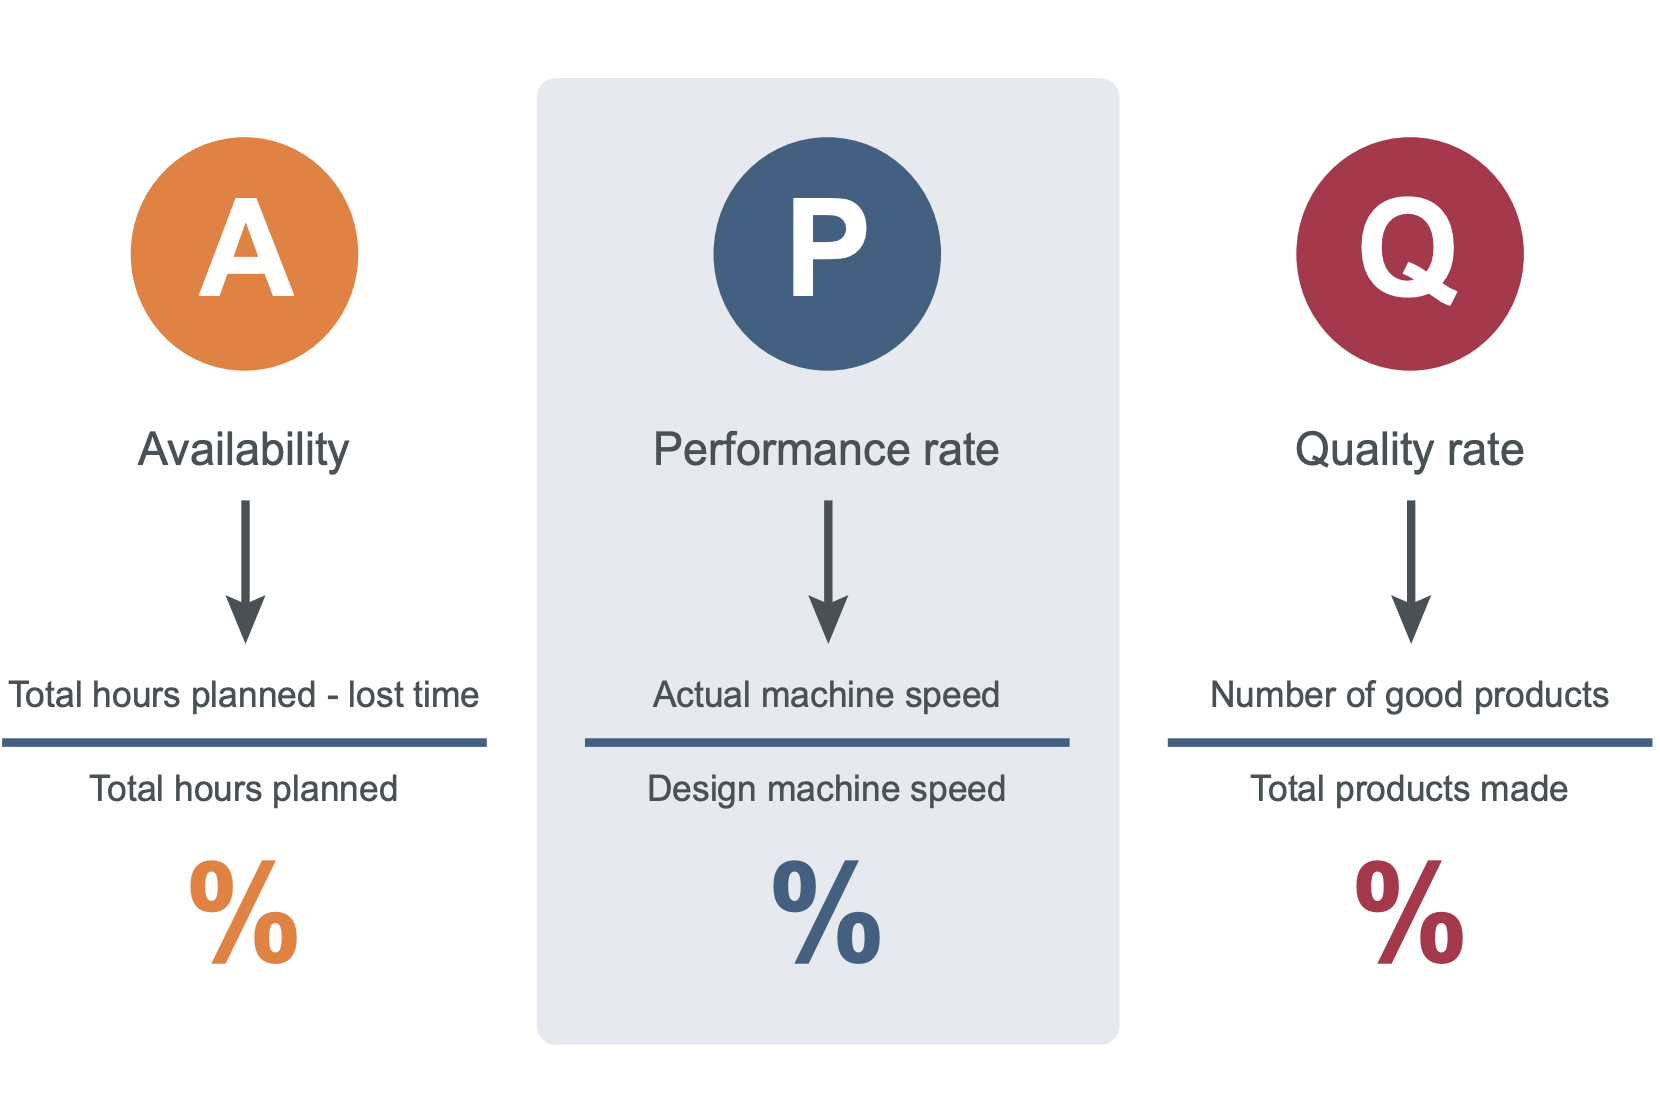 Availability, Performance Rate, Quality Rate